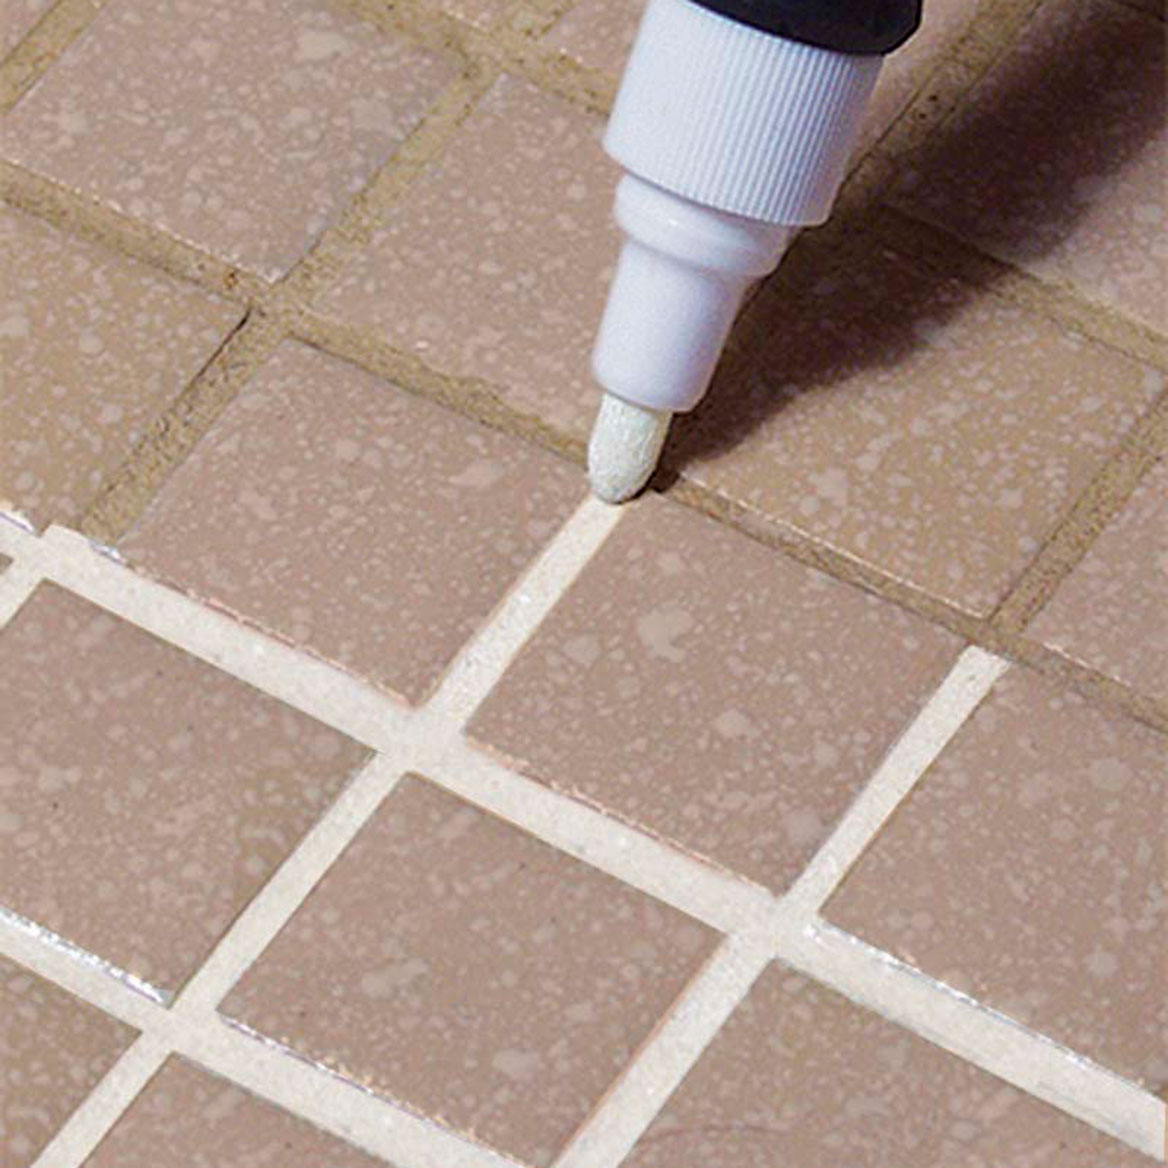 grout aide marker grout marker grout paint pen walter drake